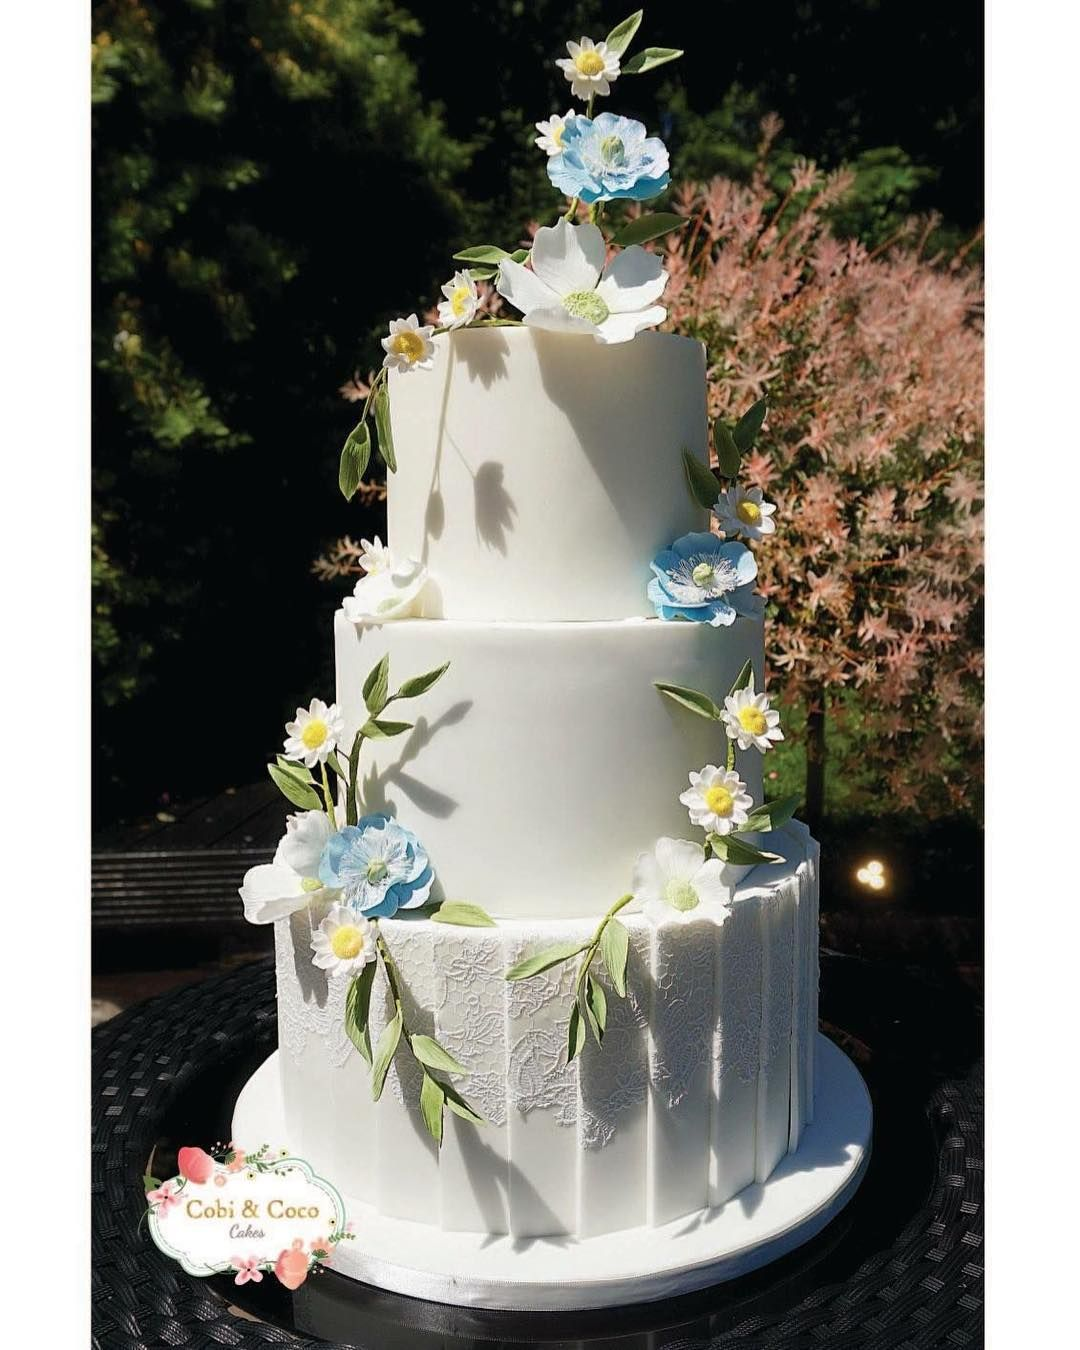 Sam Wedding Cake.A Pretty Wedding Cake For Sophie Sam Delicate Lace Panels And